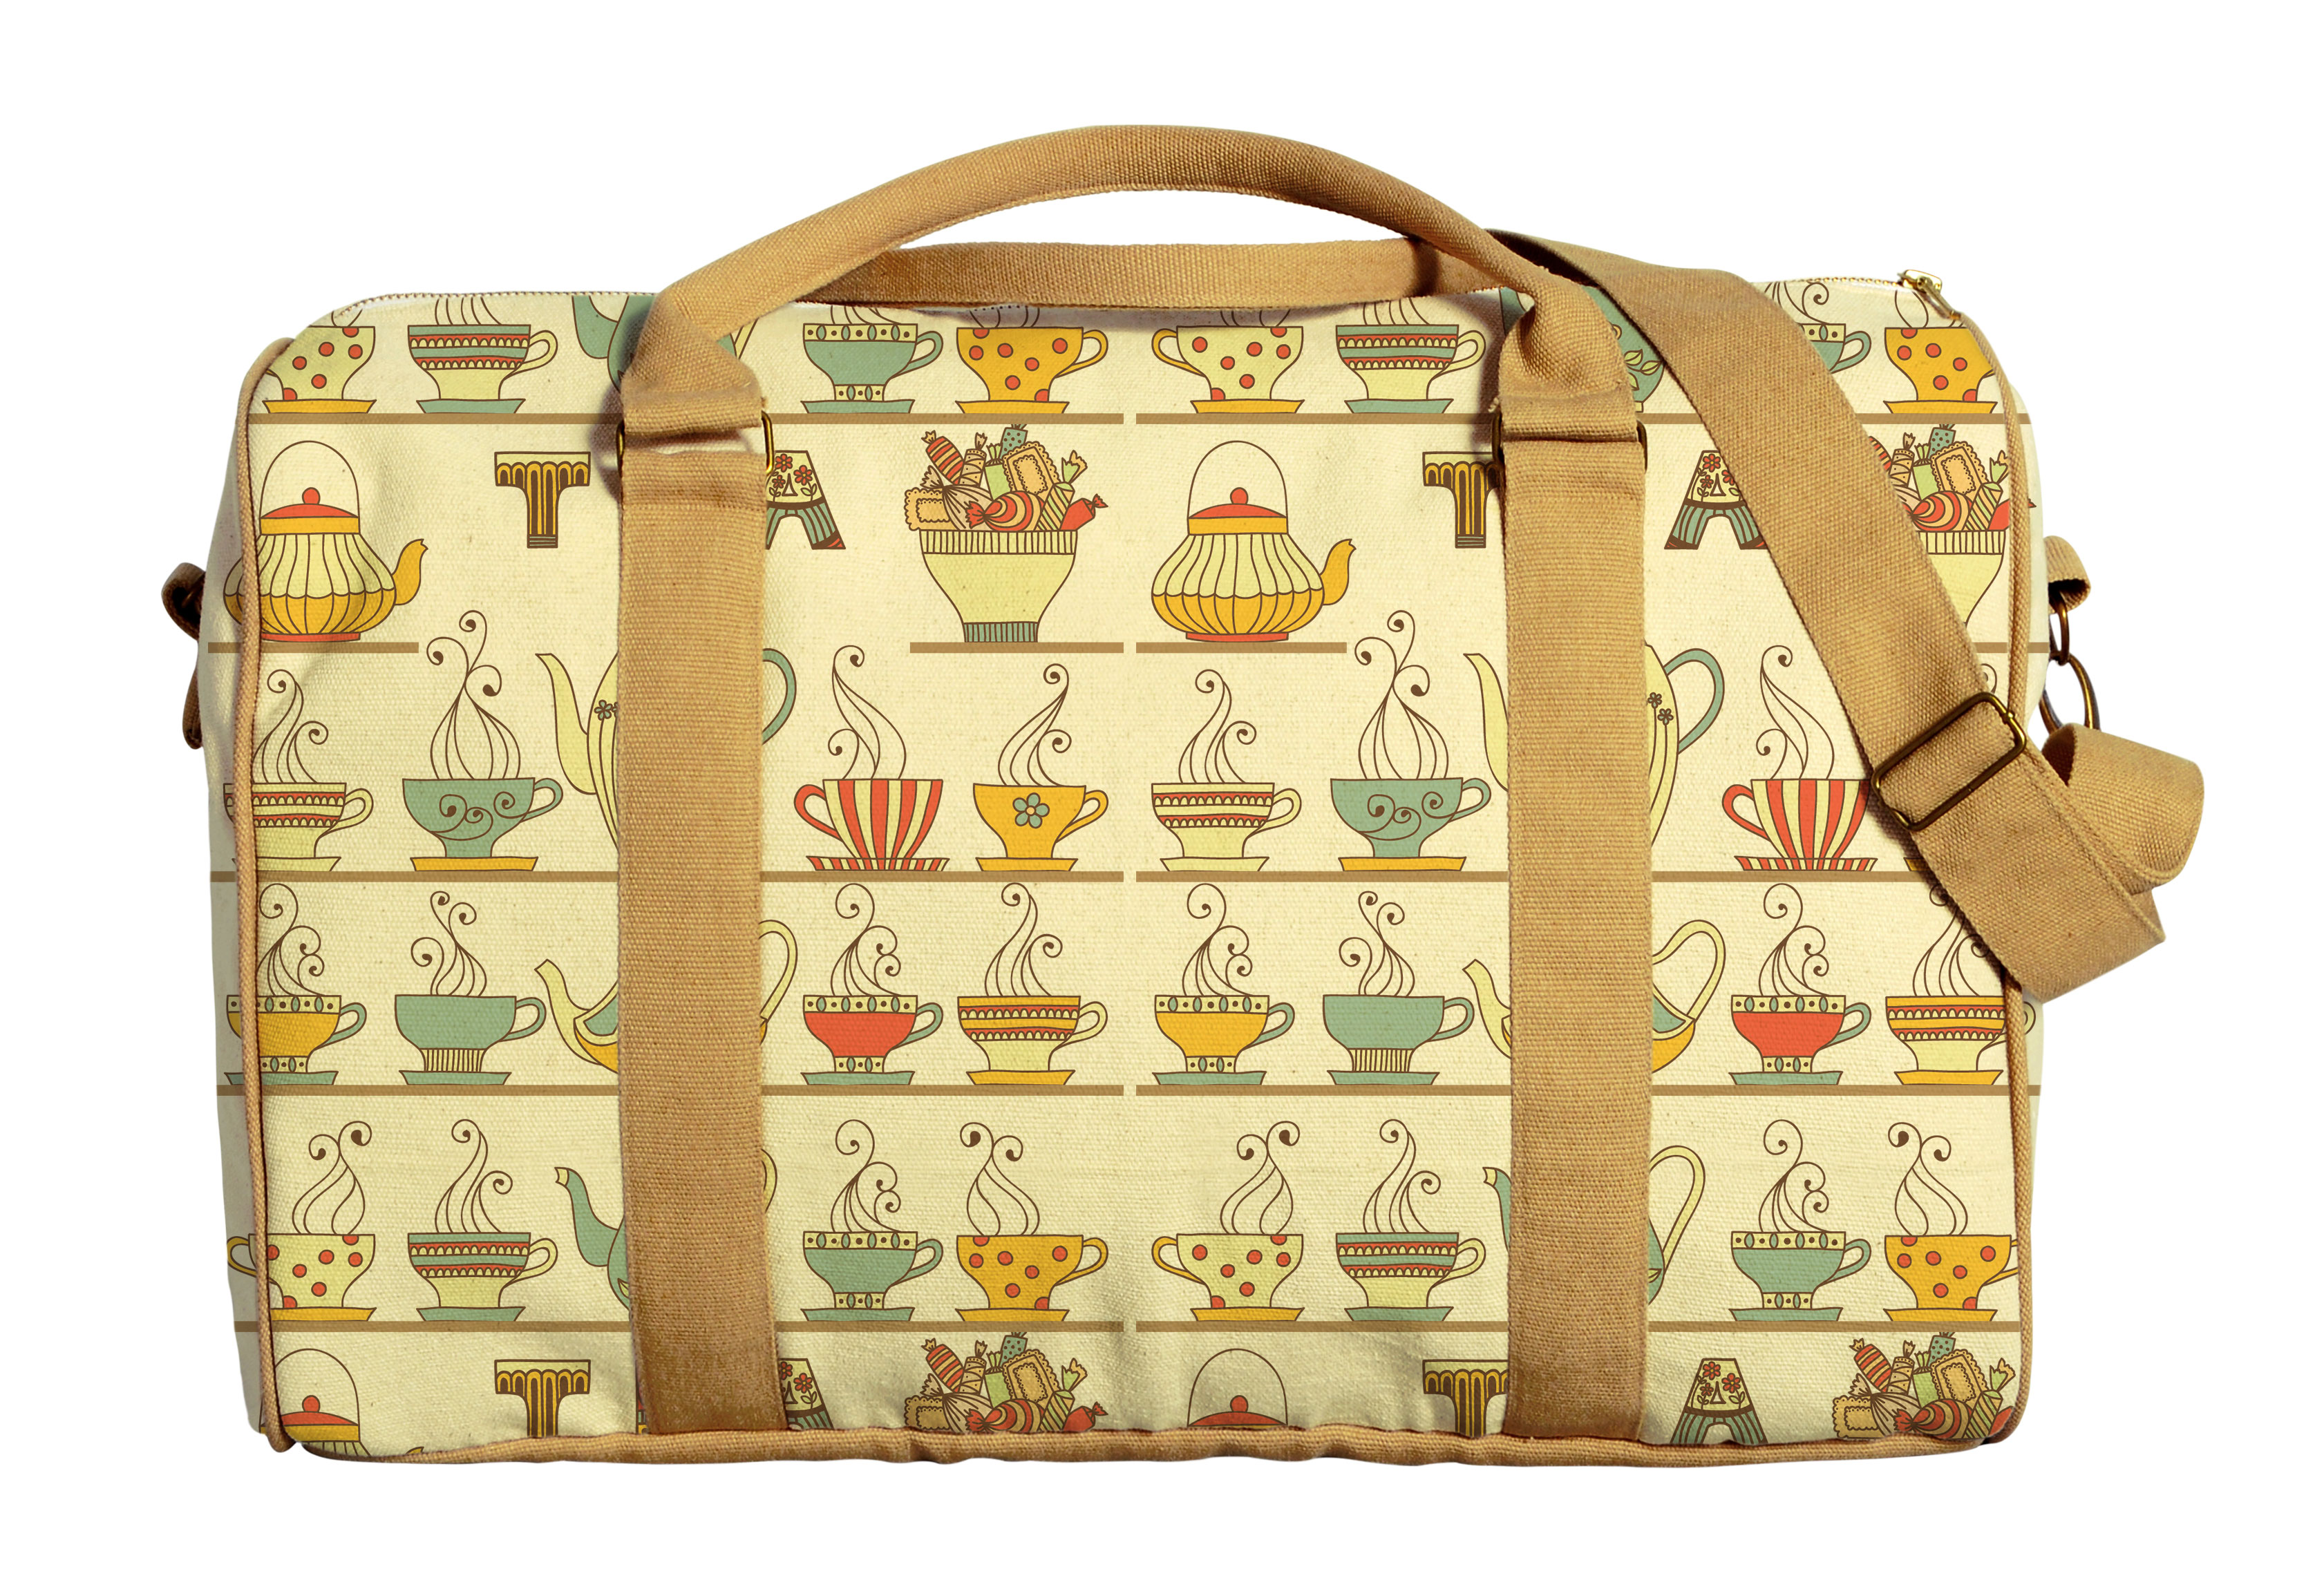 Tea Pots Pattern-3 Printed Oversized Canvas Duffle Luggage Travel Bag WAS_42 by Vietsbay